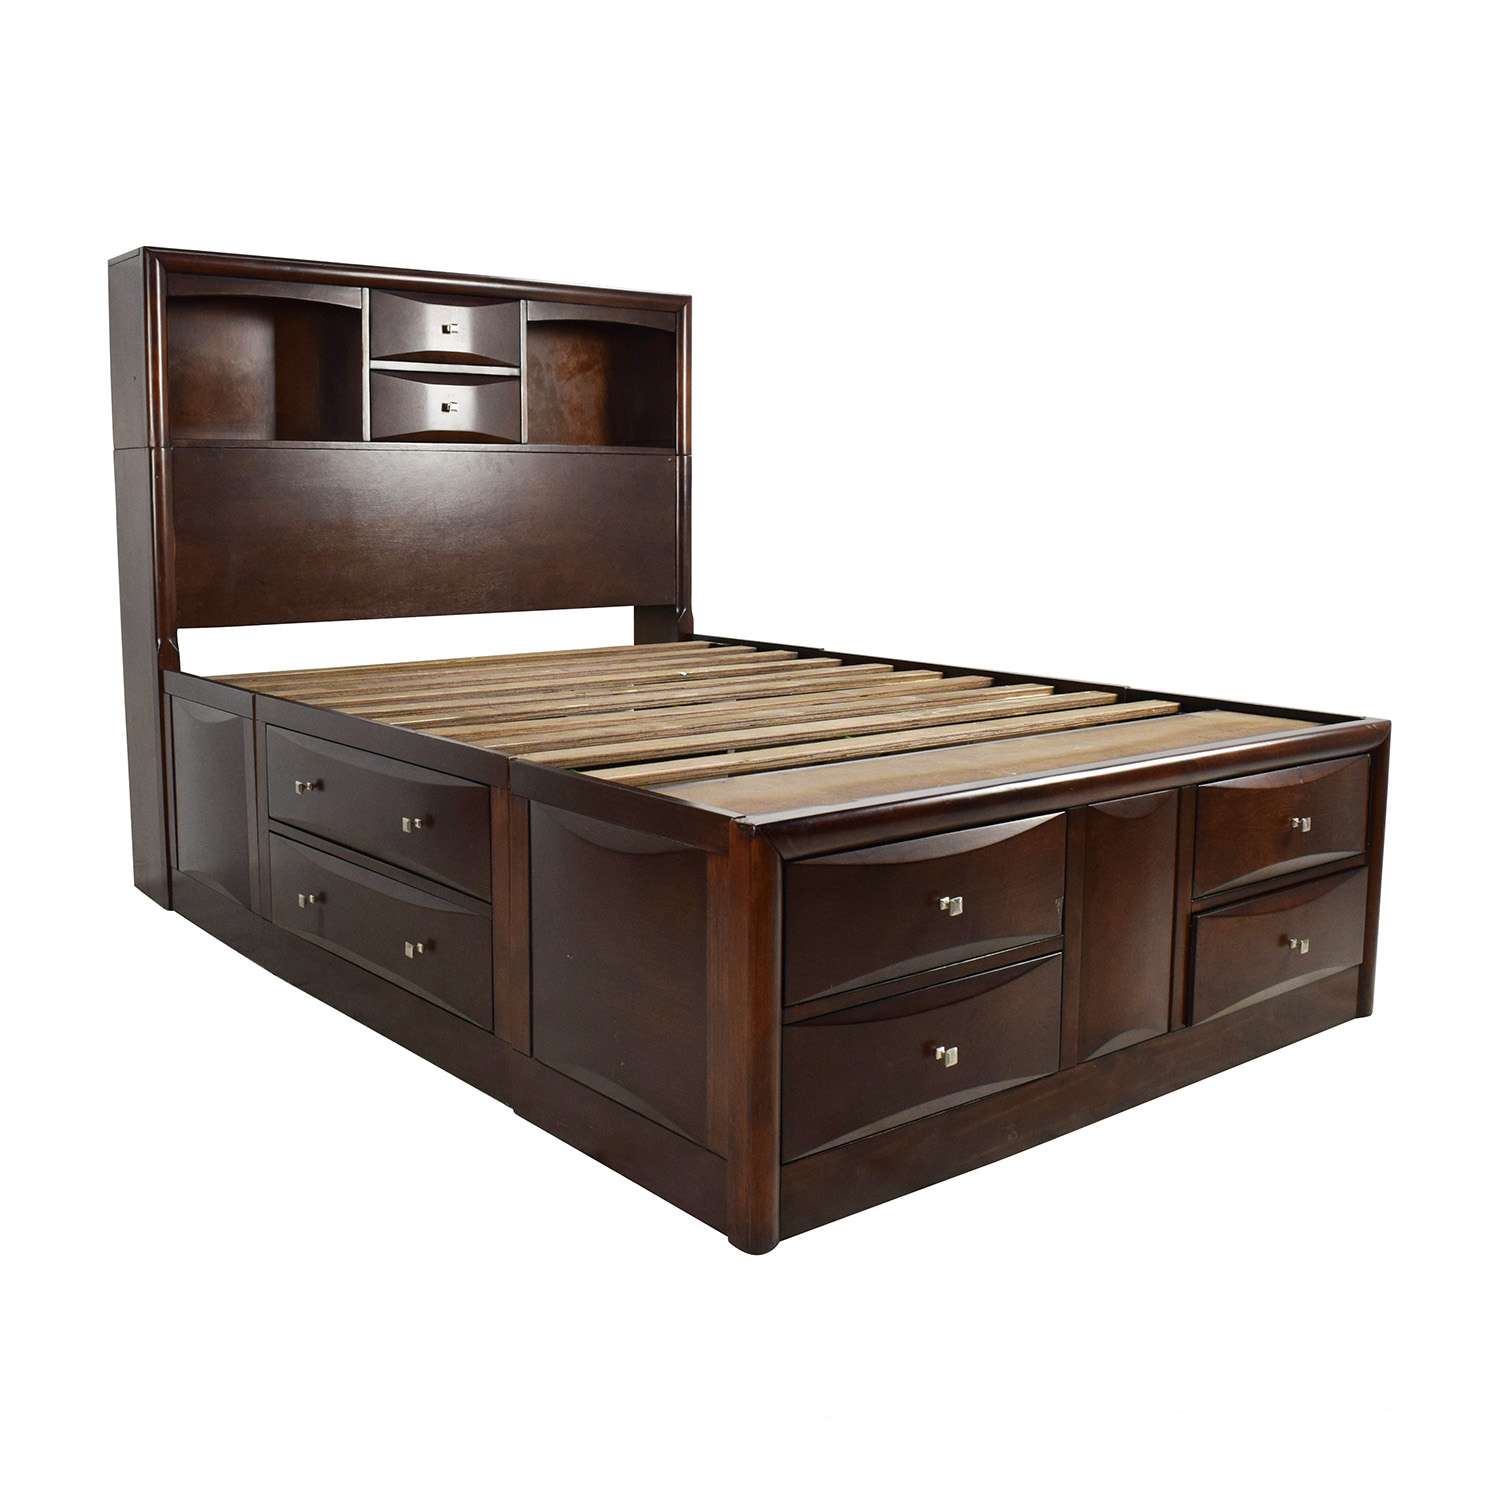 Full Captain Bed With Storage